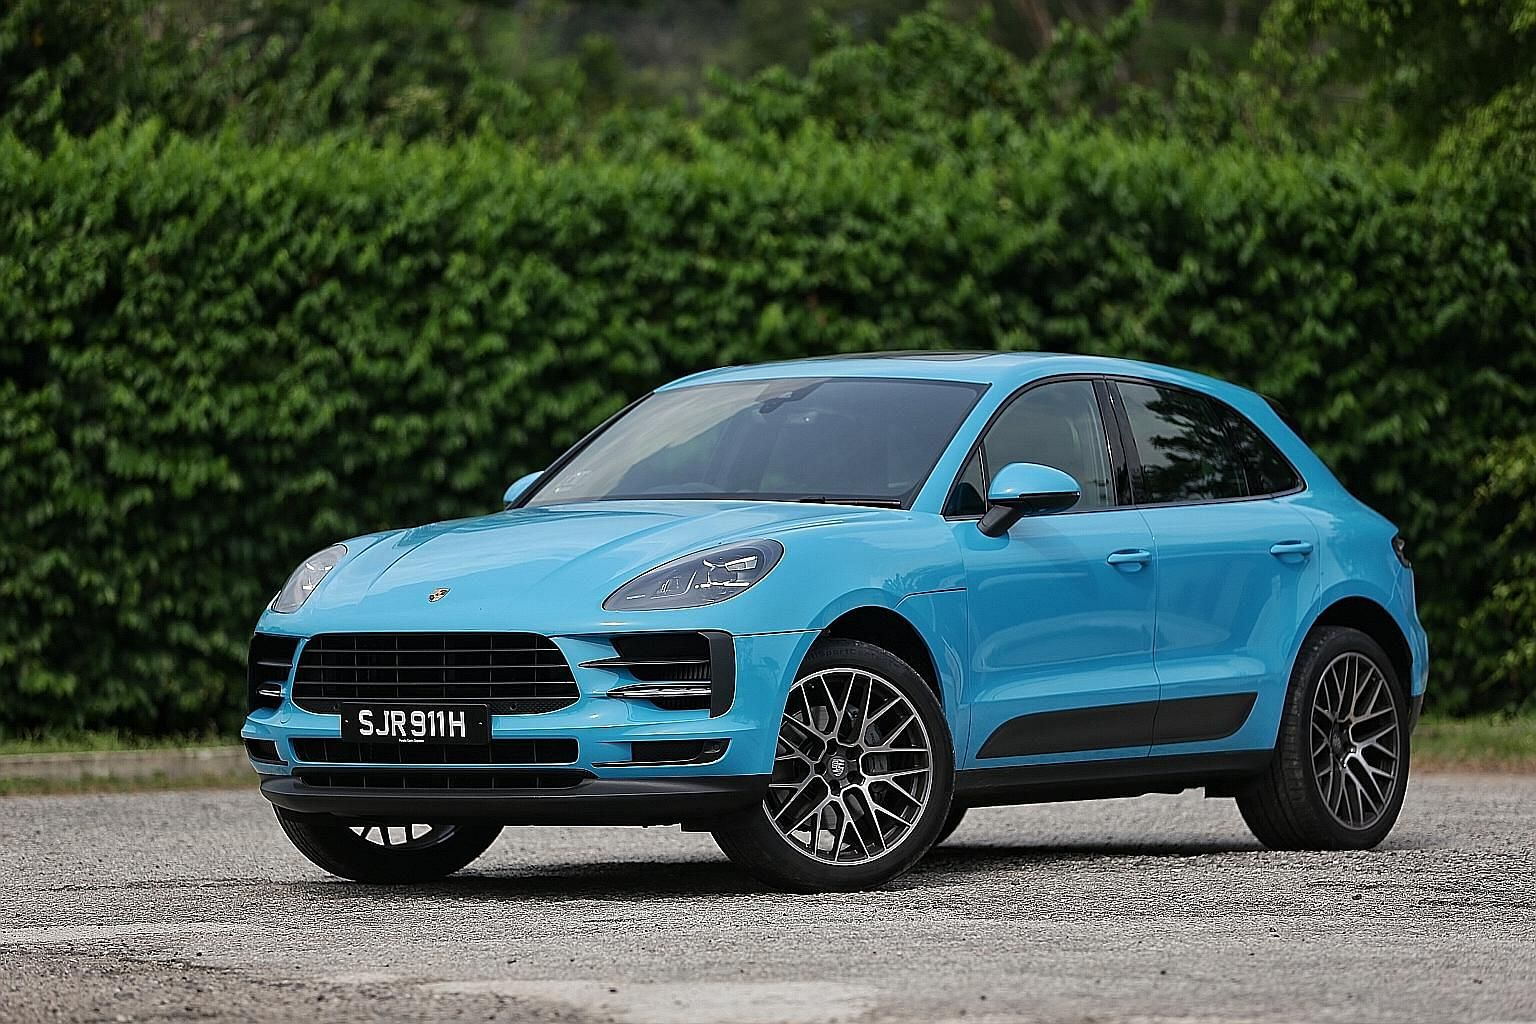 The facelifted Porsche Macan has a redesigned front bumper with wider side air intakes and LED headlights, and its tail lamps stretch across the width of the car.